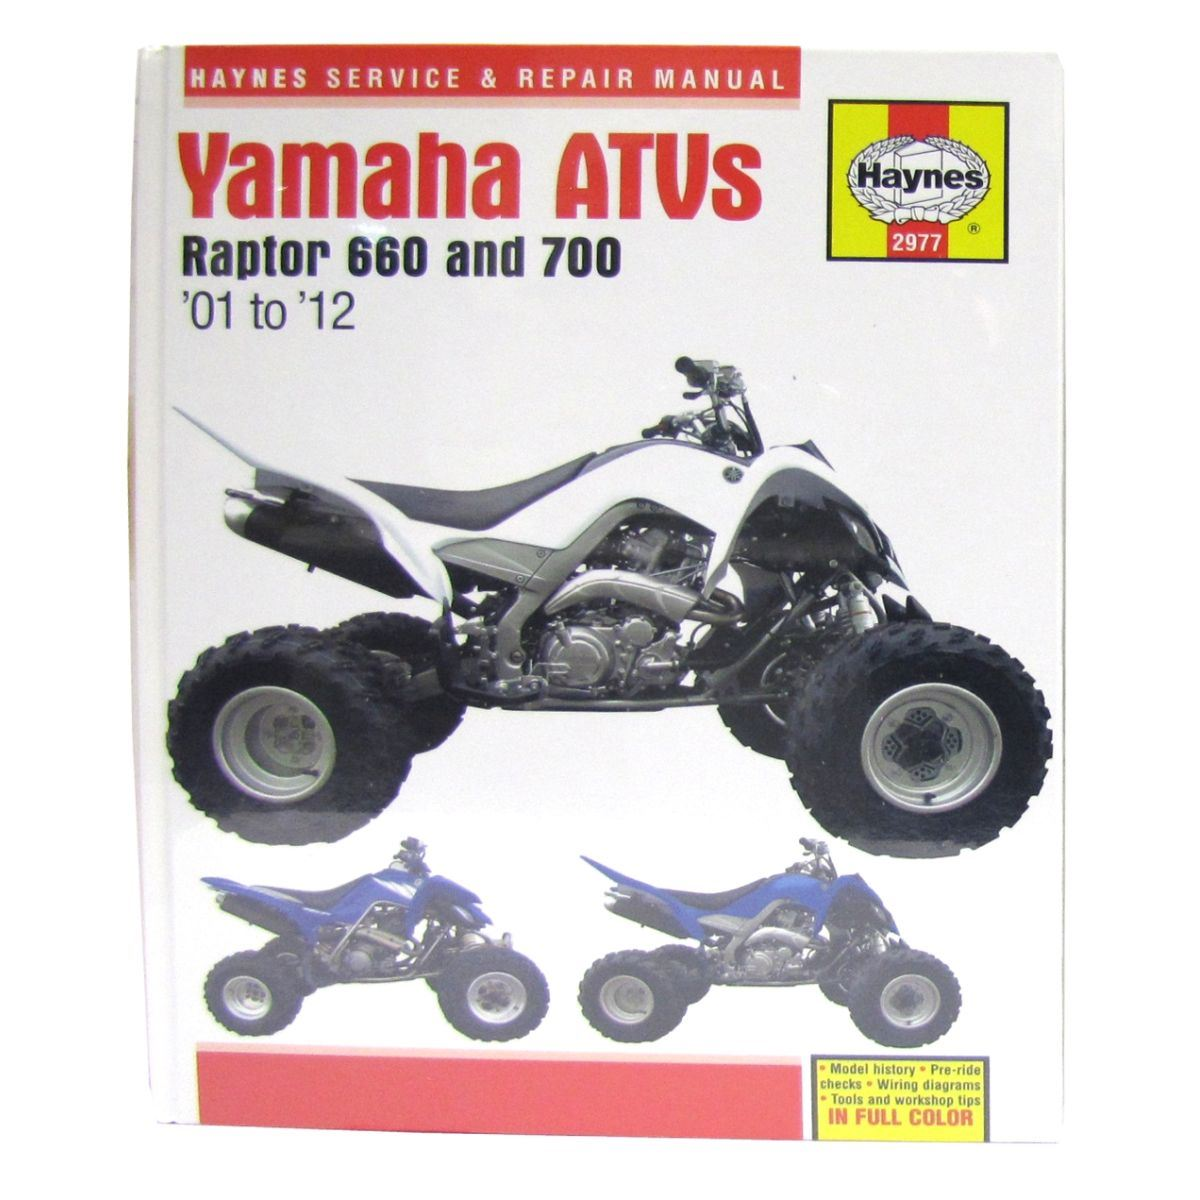 2002 Yamaha Raptor 660 Manual - Enthusiast Wiring Diagrams •